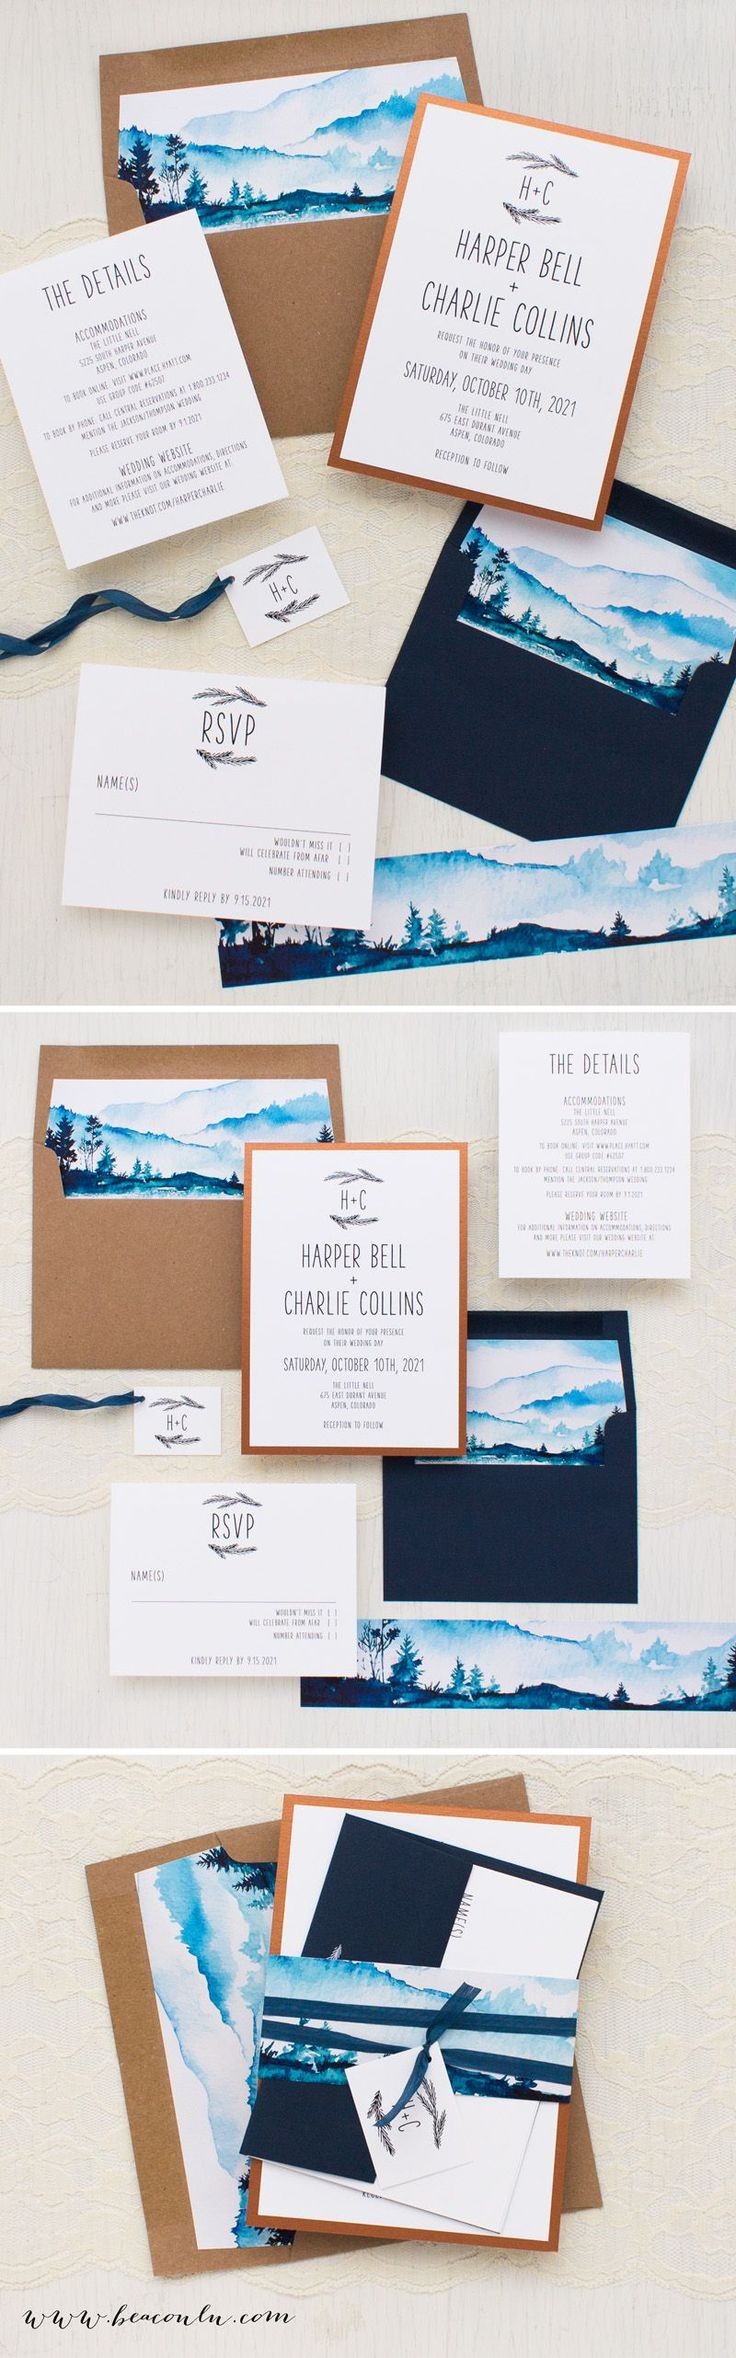 funny wedding invitation rsvp goes viral%0A Copper  kraft and navy blue mountain inspired Blue Mountain wedding  invitations  Simple typographic fonts